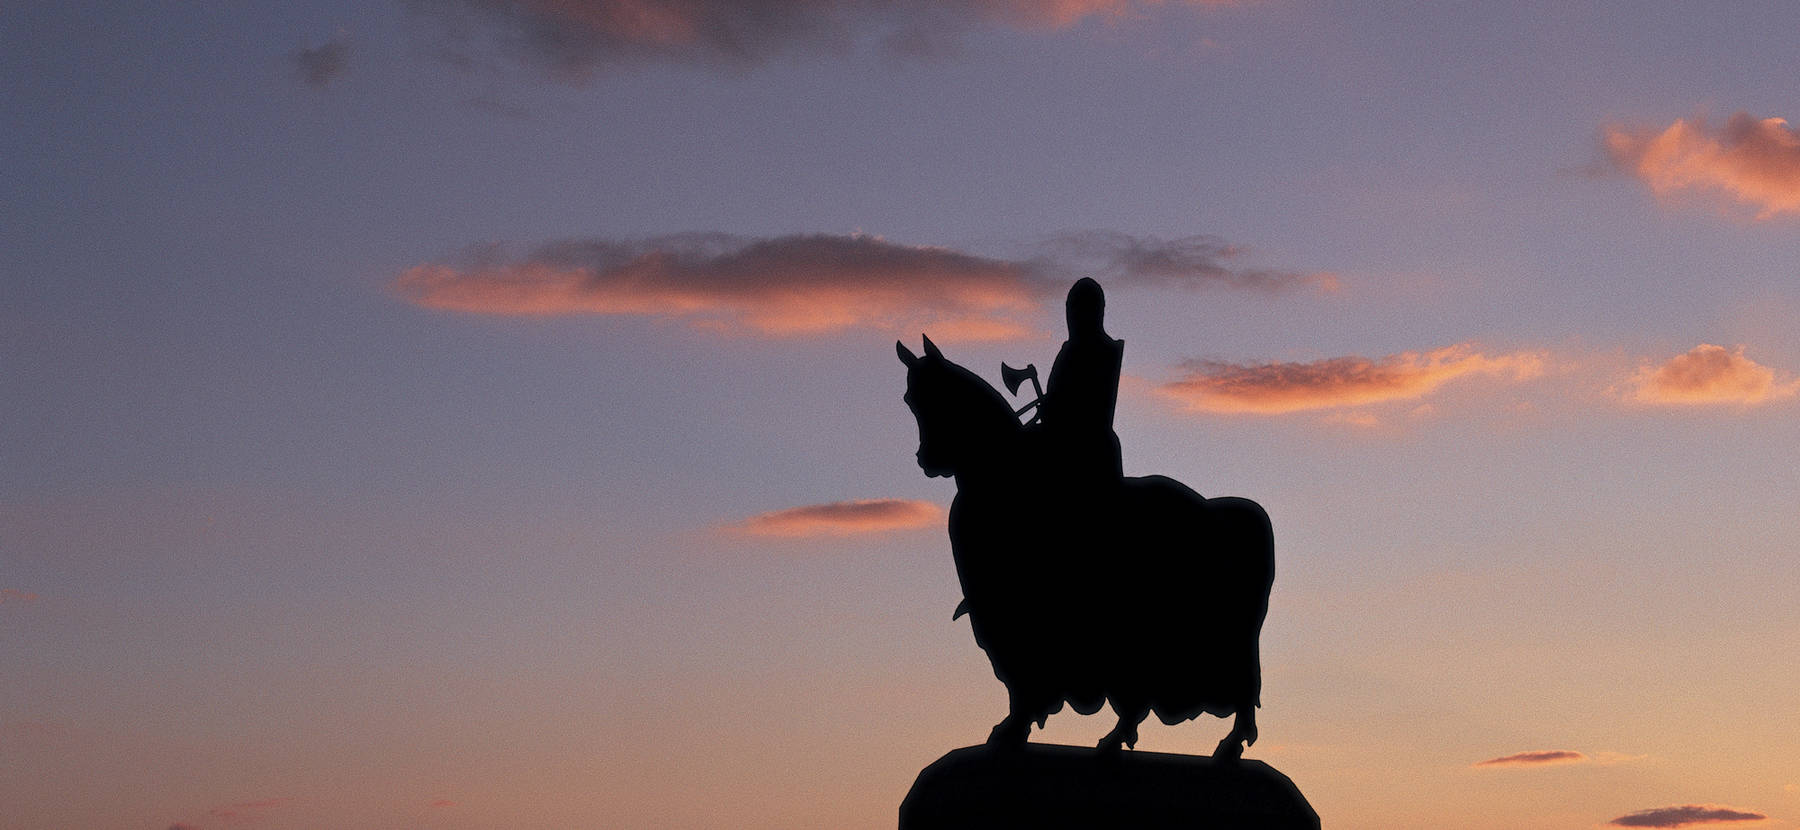 Robert the Bruce on horseback monument, with Stirling Castle in the distance